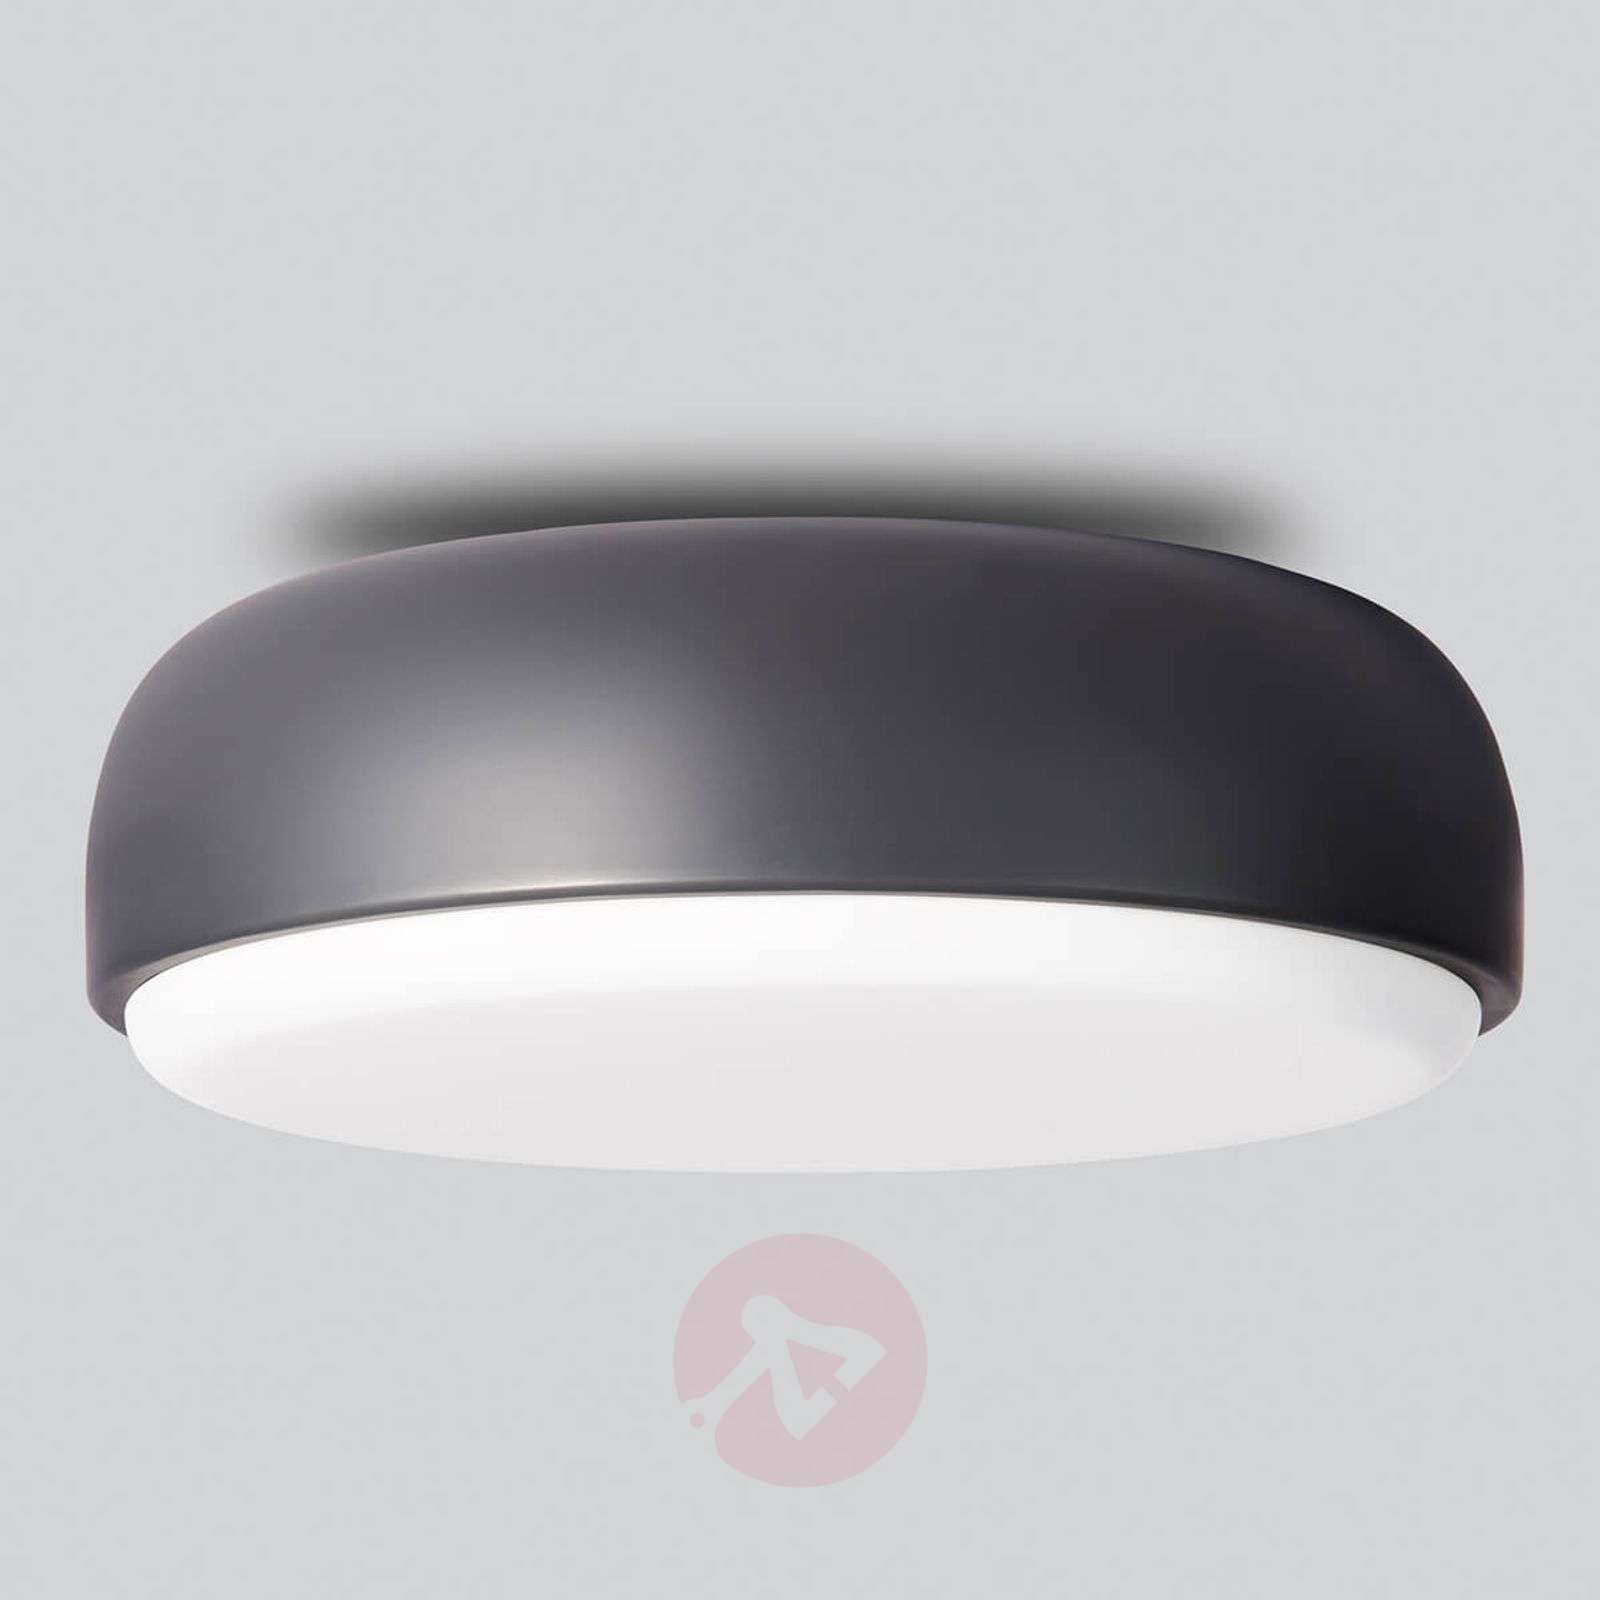 Ronde design plafondlamp Over Me-7013095X-01